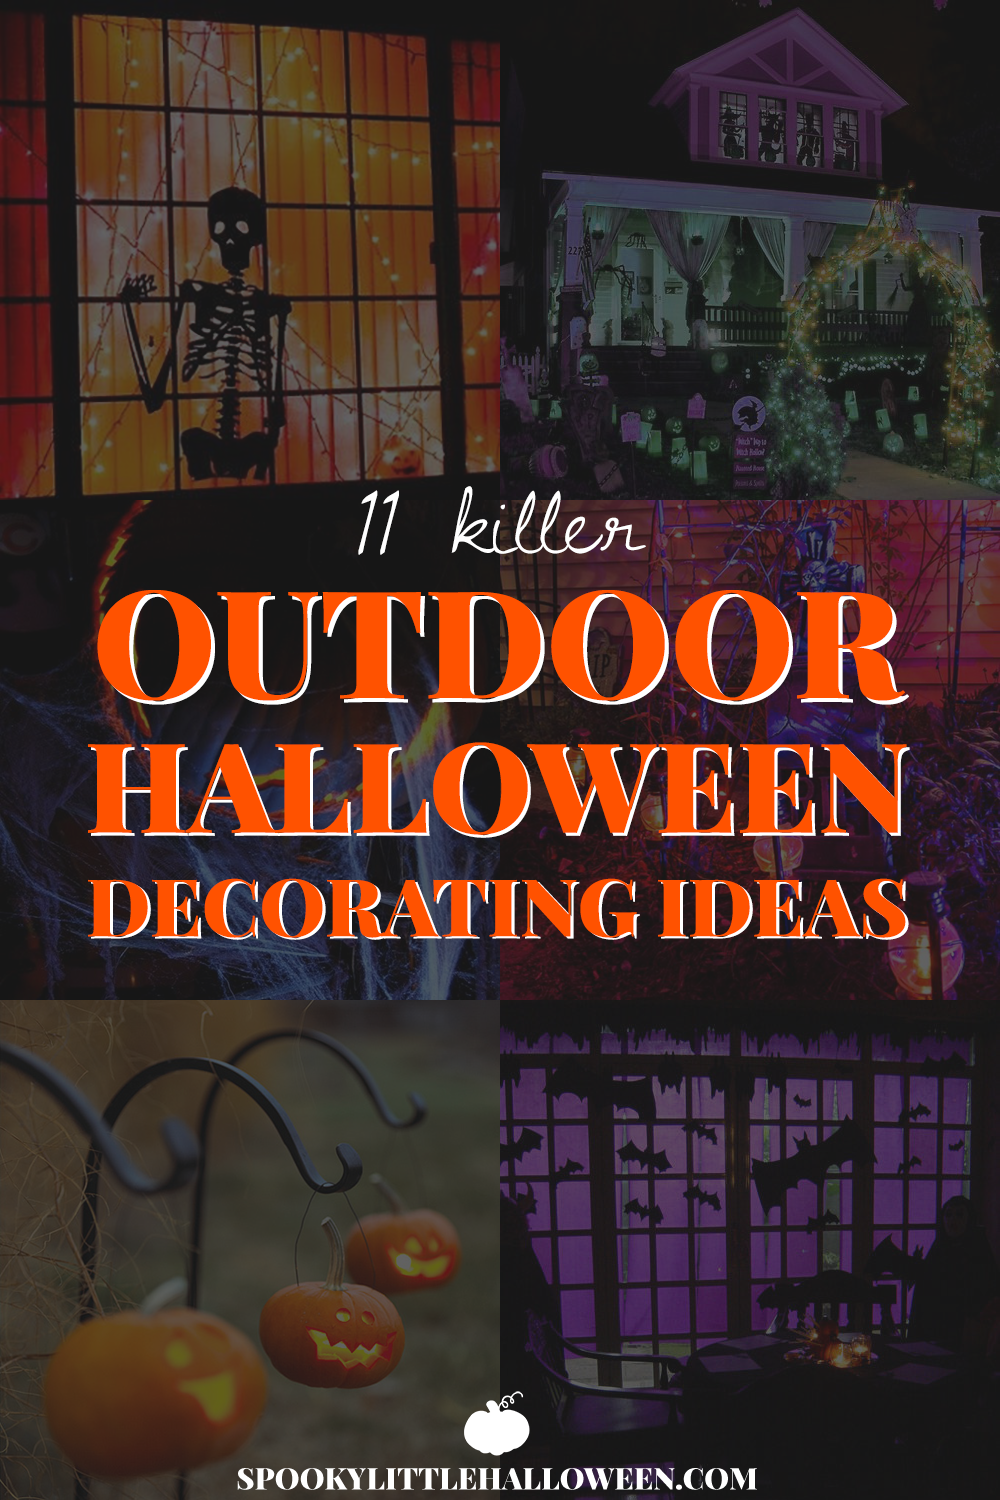 How to get your yard ready for Halloween this year